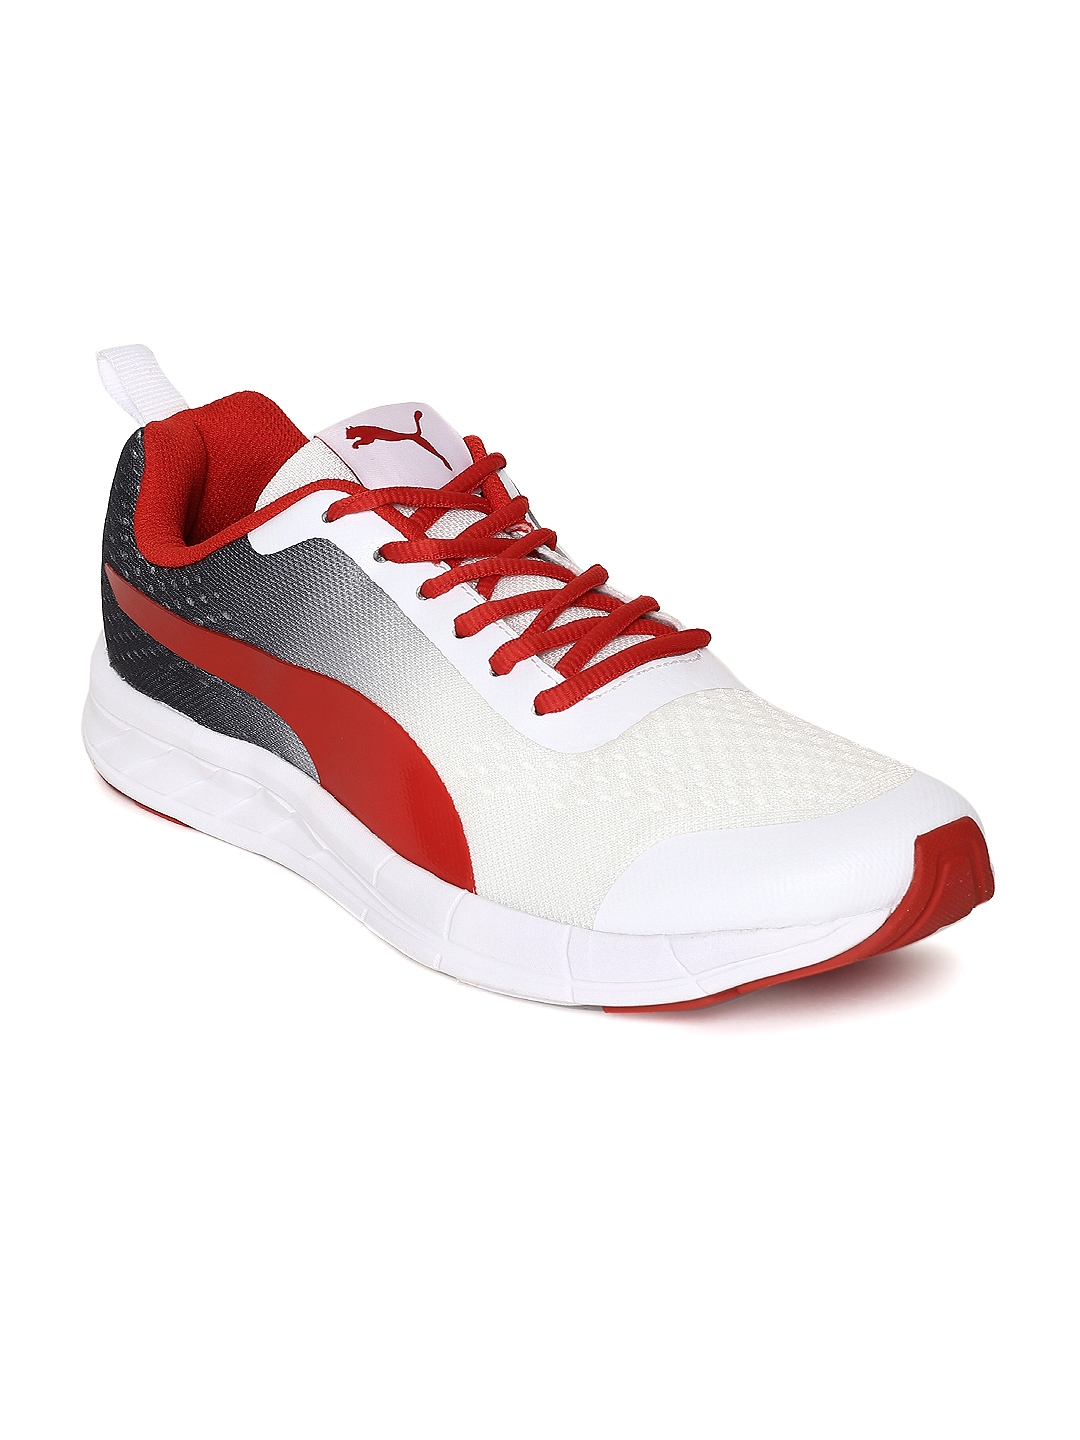 Buy Puma Men White   Red Feral Runner Running Shoes - Sports Shoes ... 3bcc44d97